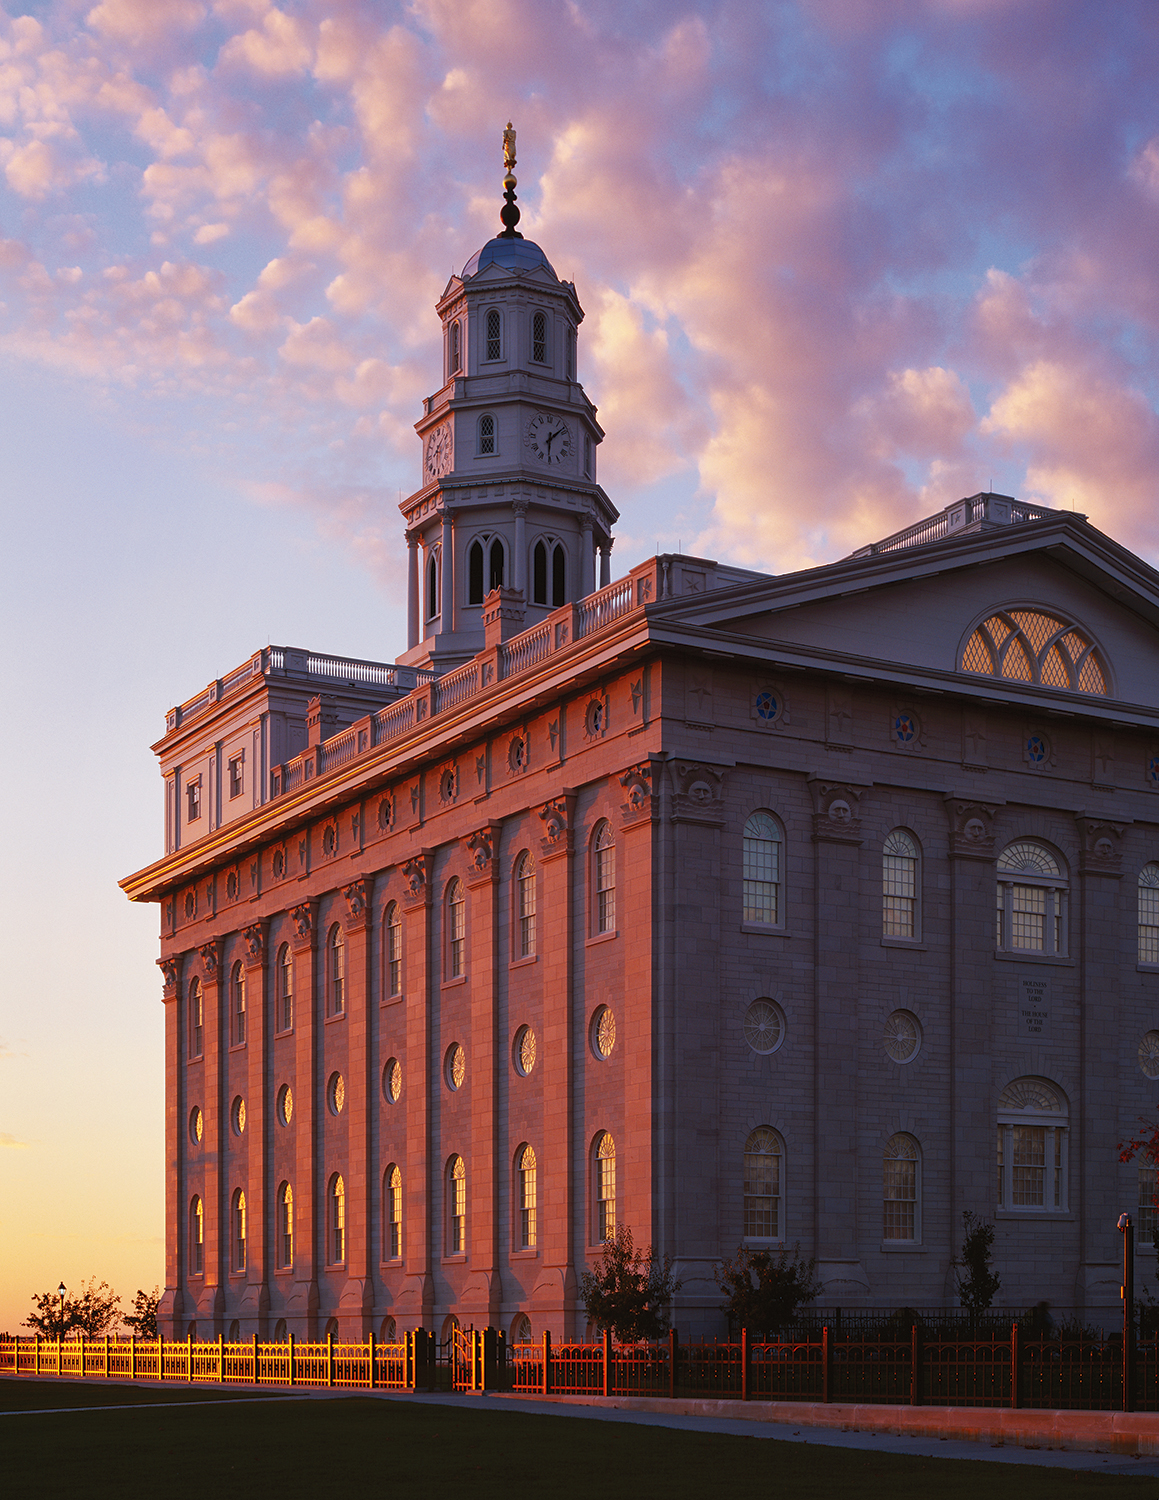 The Nauvoo Temple